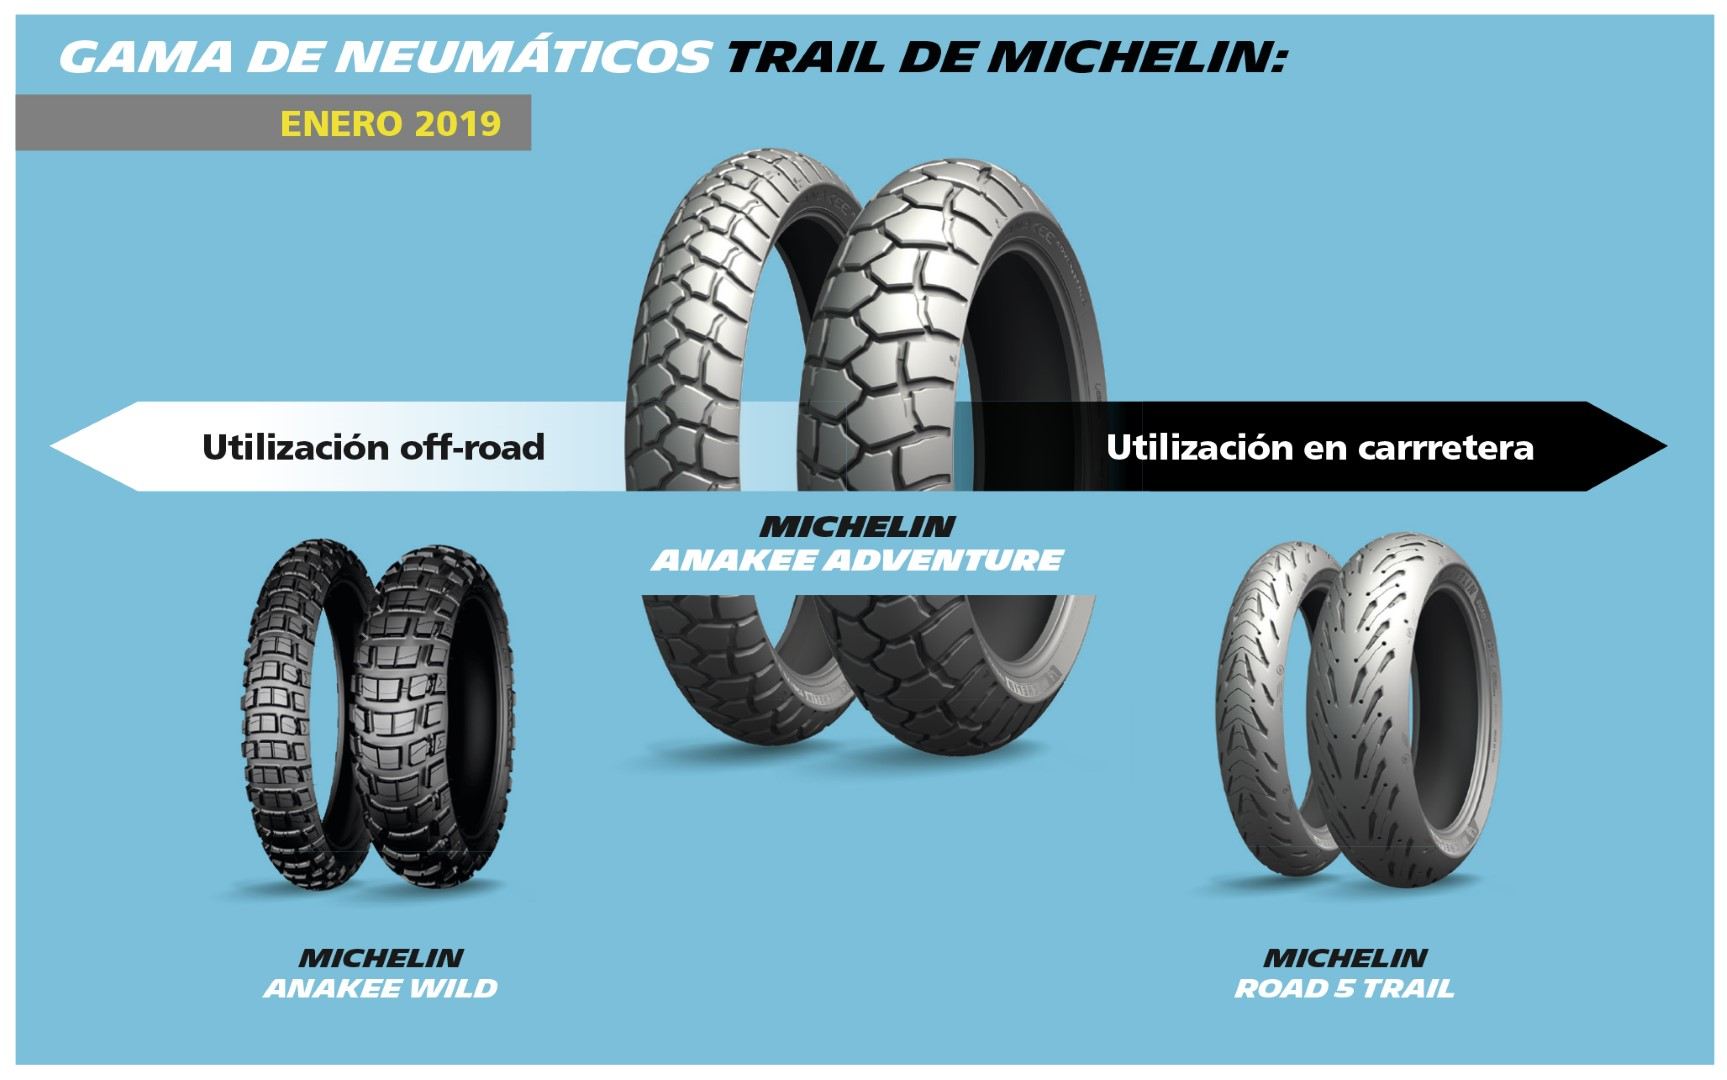 MICHELIN Anakee Adventure. Fotos